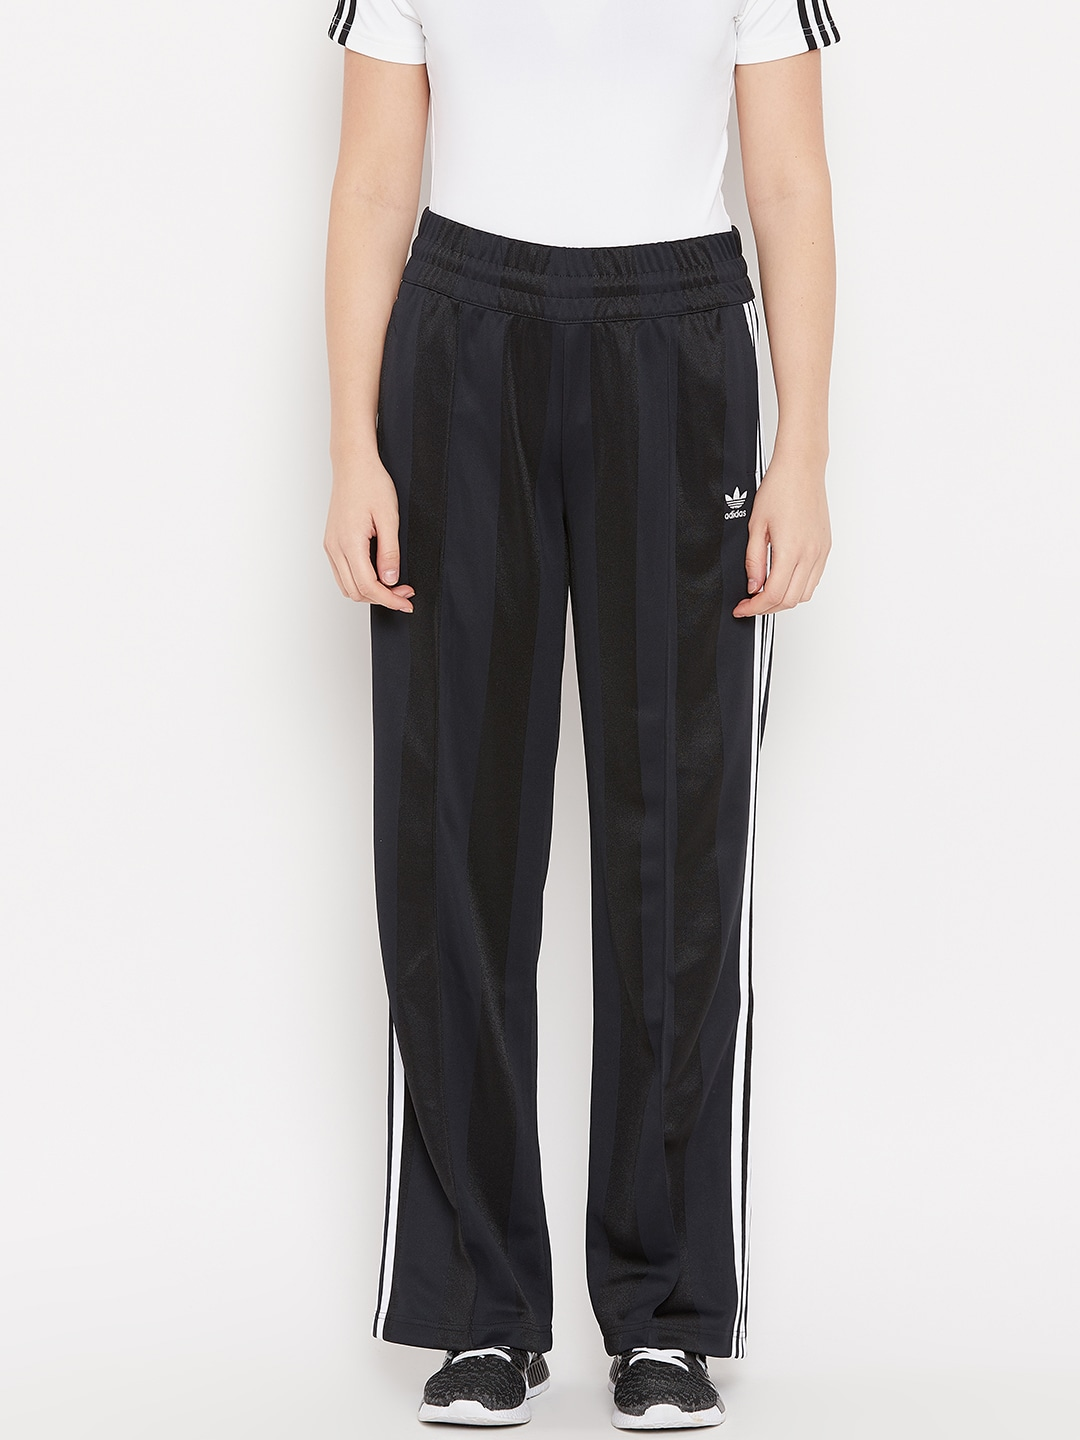 d039499cc6ef Women Adidas Originals Track Pants Pants - Buy Women Adidas Originals Track  Pants Pants online in India